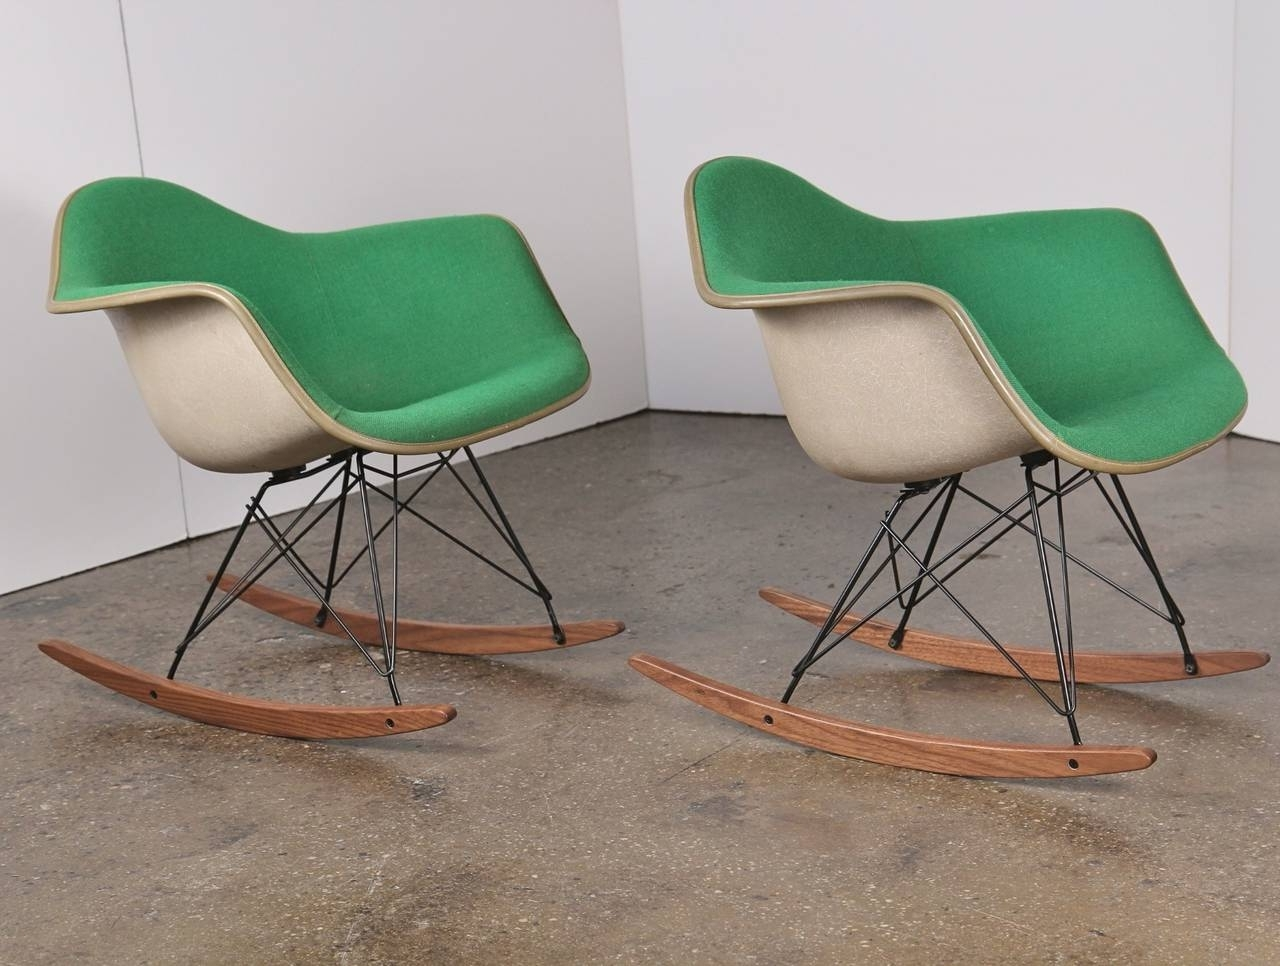 Upholstered Rocking Chairs Throughout Recent Vintage Green Eames Upholstered Rocking Chair – One Left At 1stdibs (View 13 of 20)